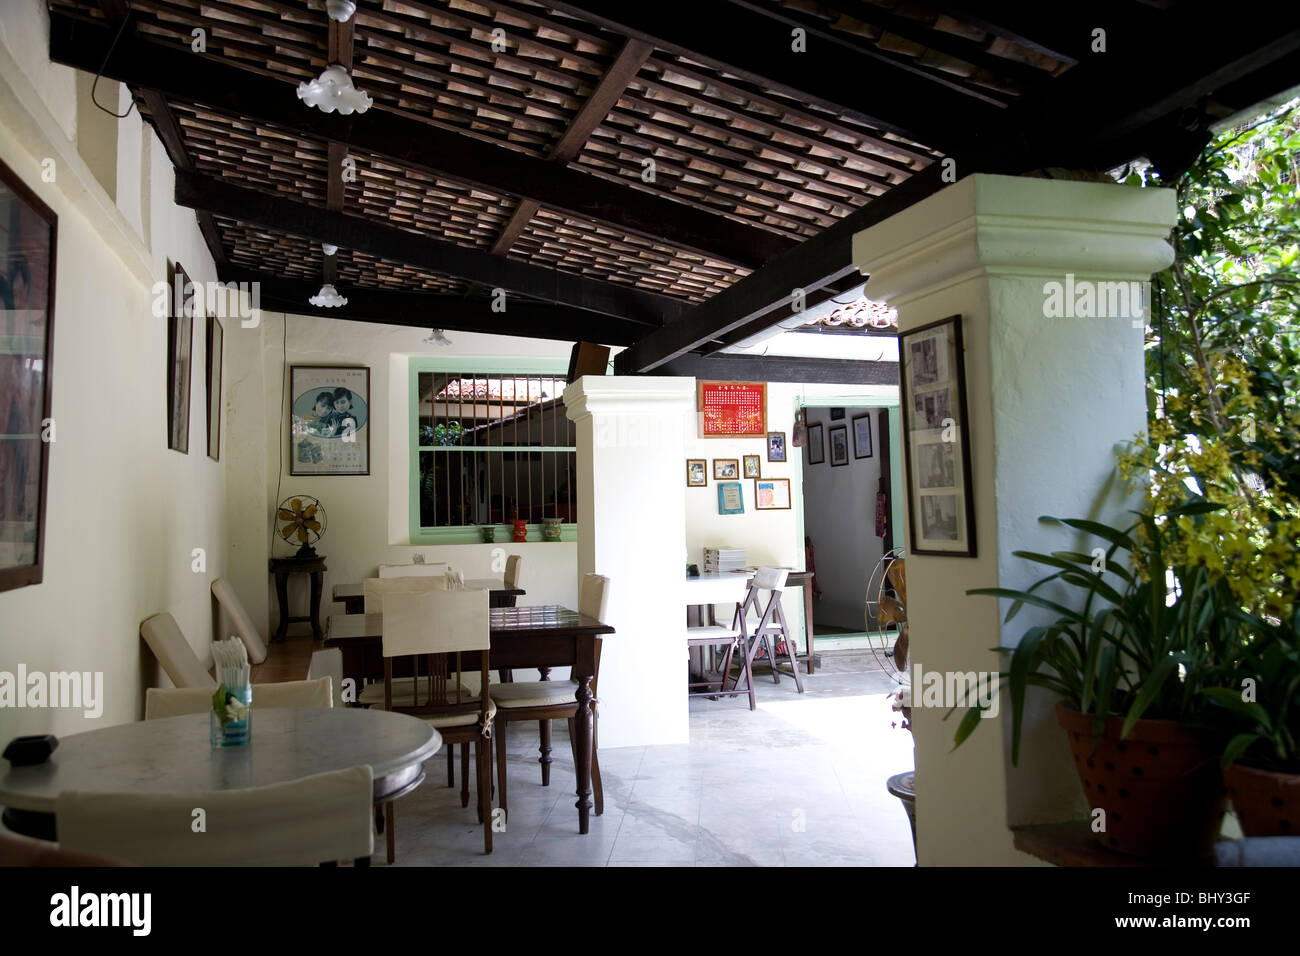 China Inn Caf And Restaurant Phuket Old Town Stock Photo Royalty